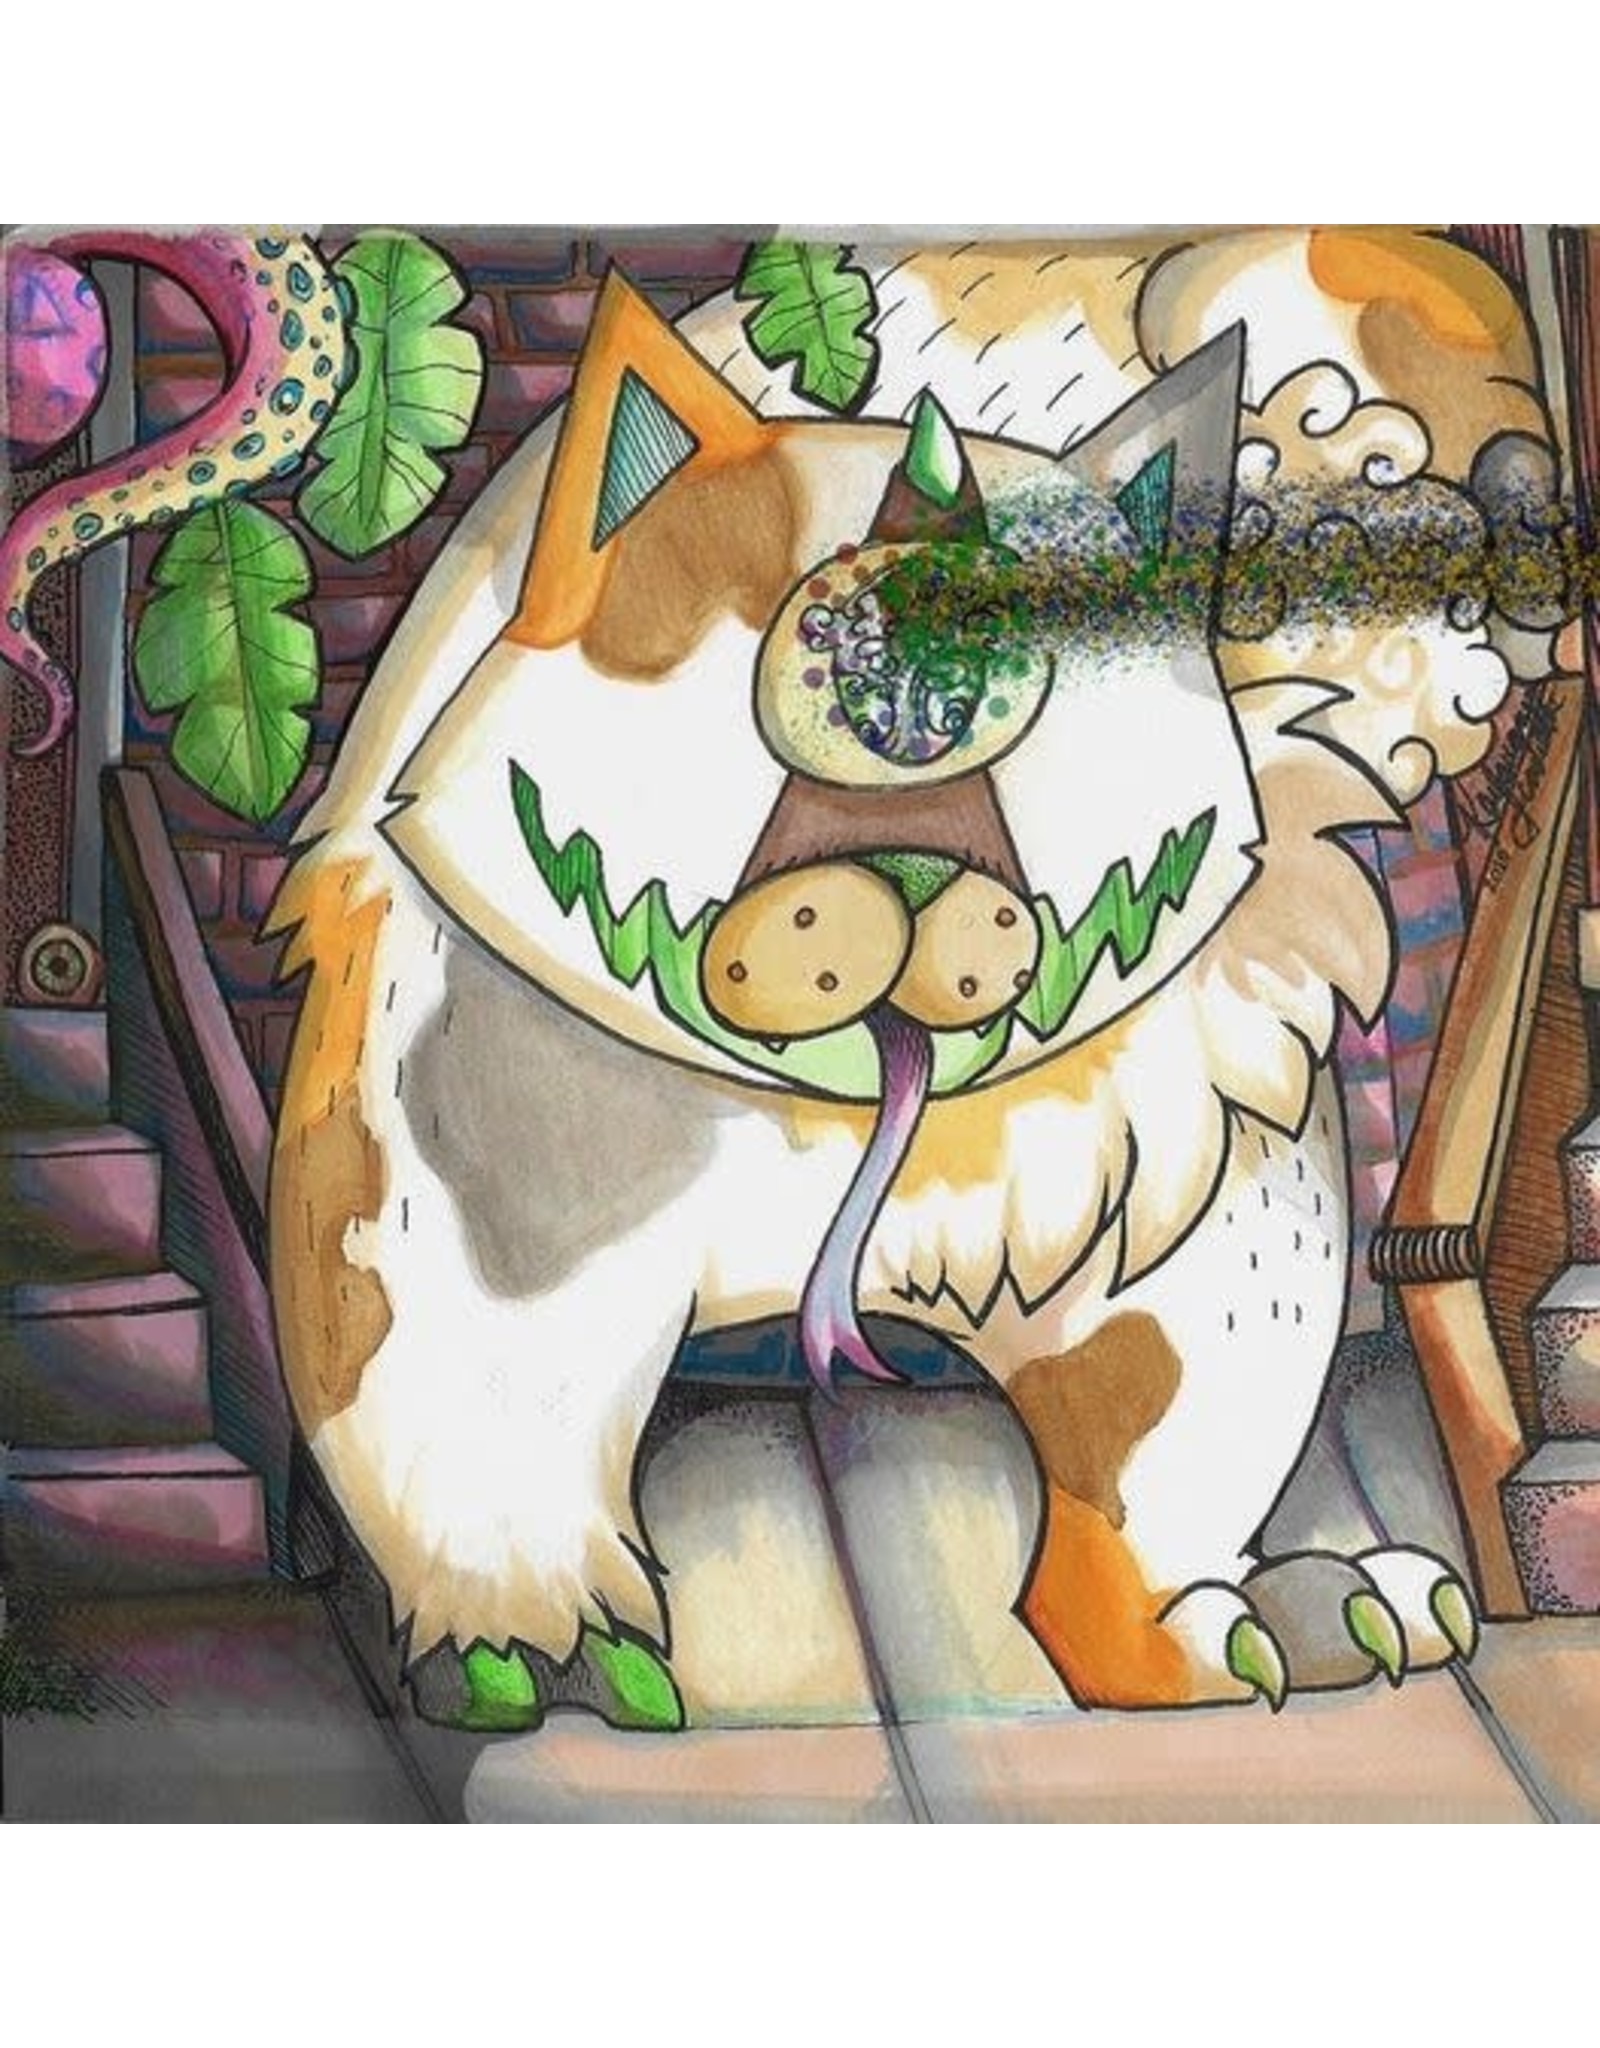 Strange Breed - The Curiousity and the Cat 2CD